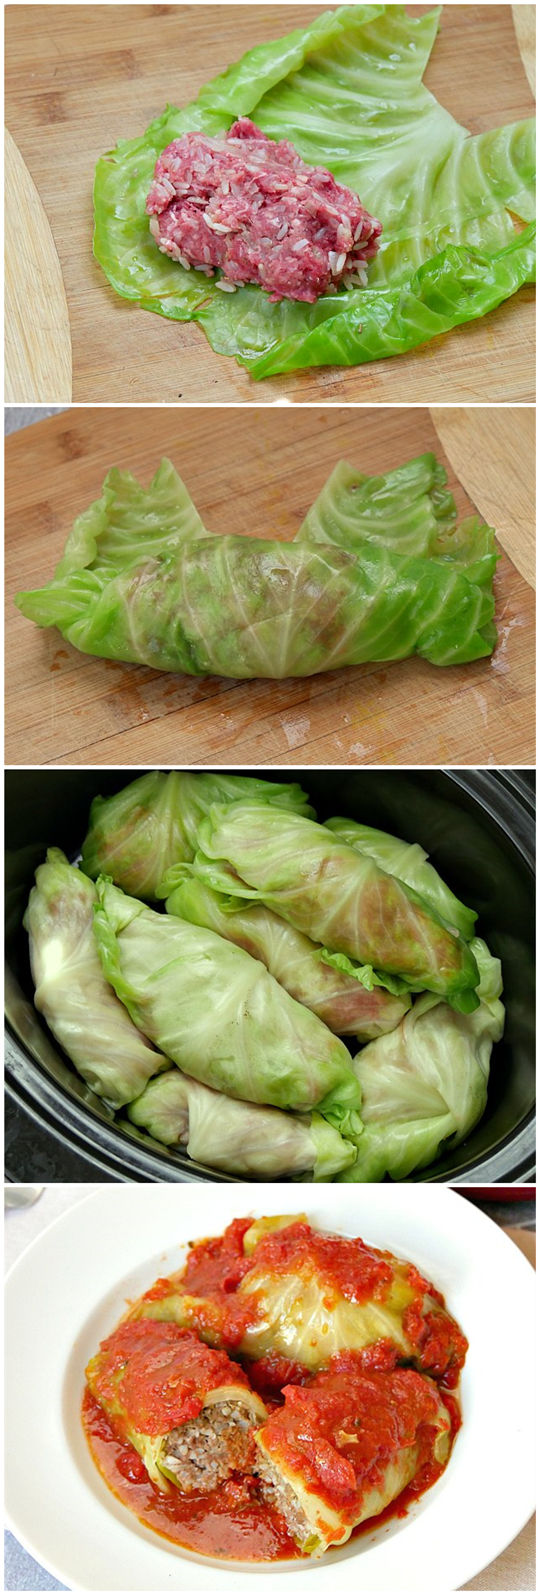 Slow Cooker Cabbage Rolls in Tomato Sauce